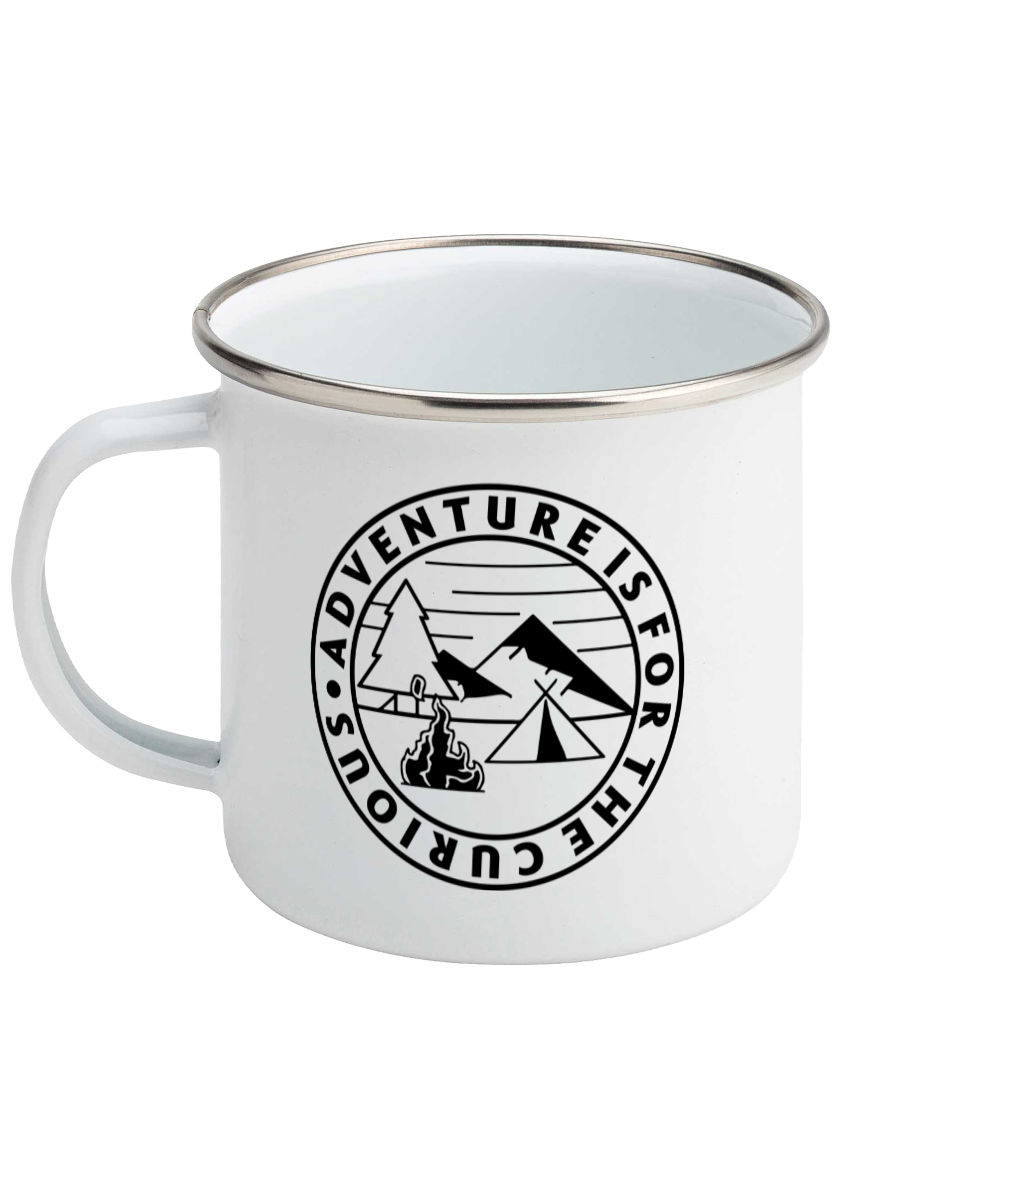 Adventure is for the curious - Enamel Mug, Suggested Products, Pen and Ink Studios Adventure Clothing